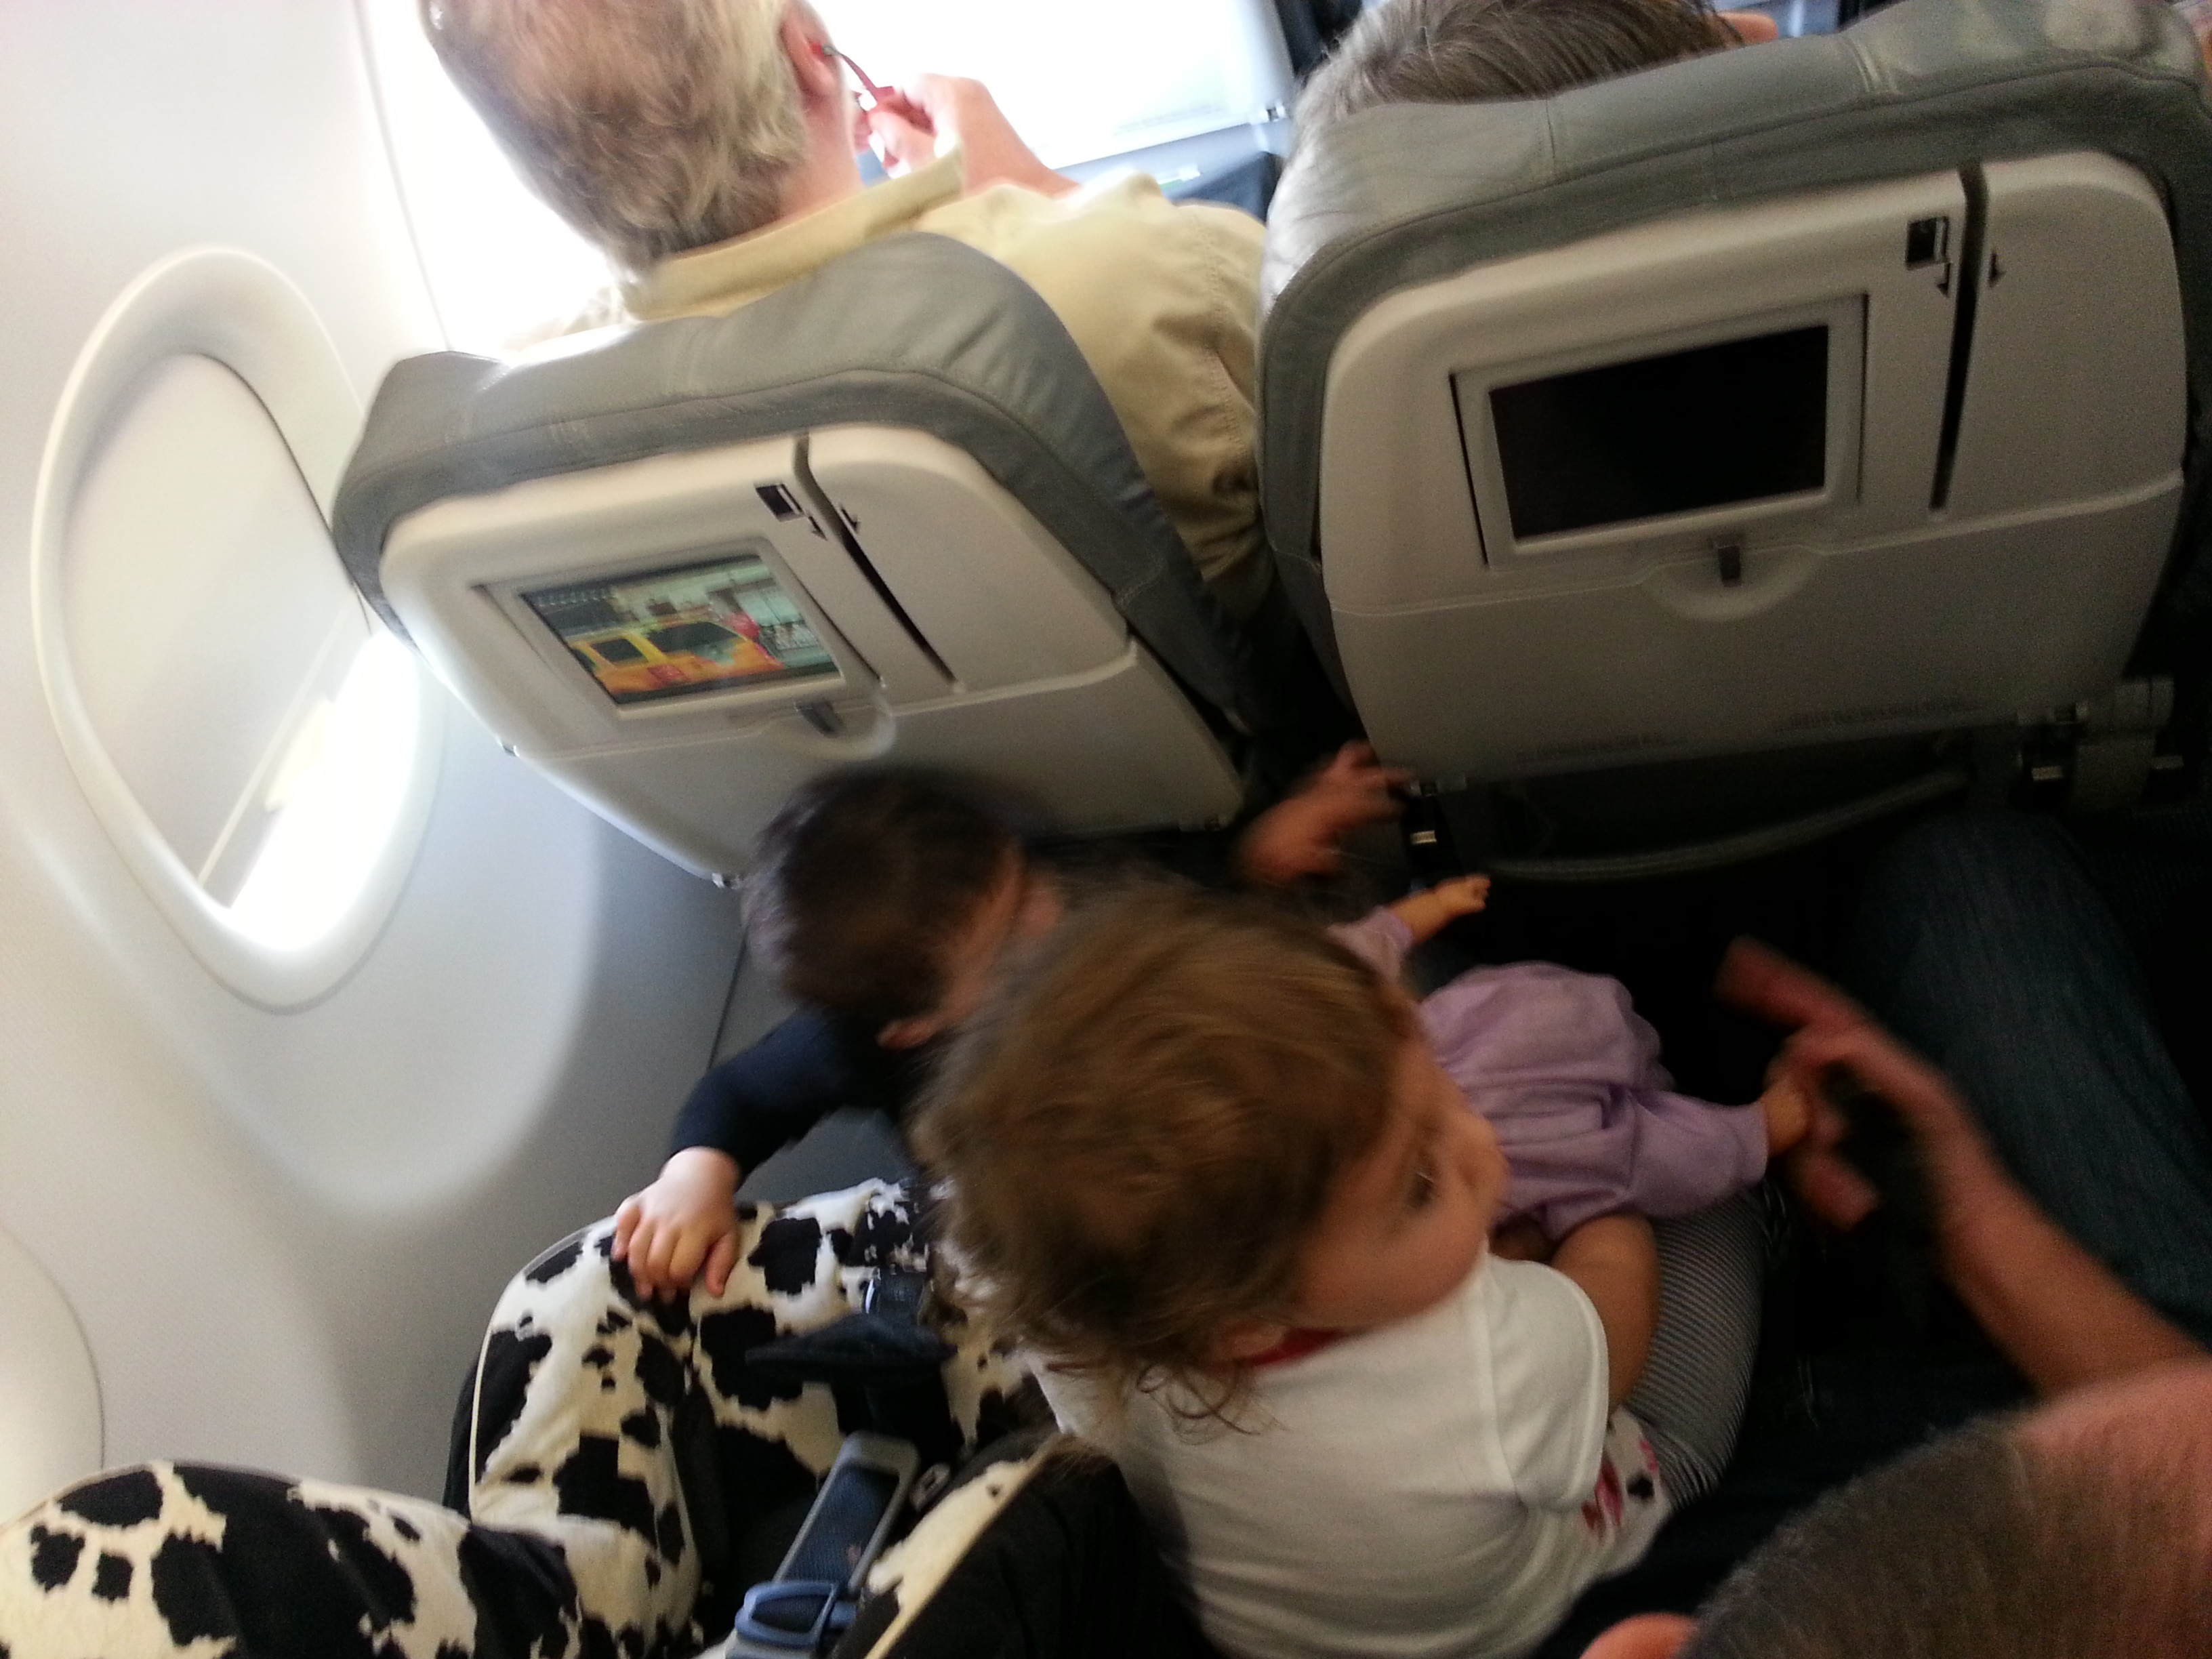 Keeping Baby Safe Inflight